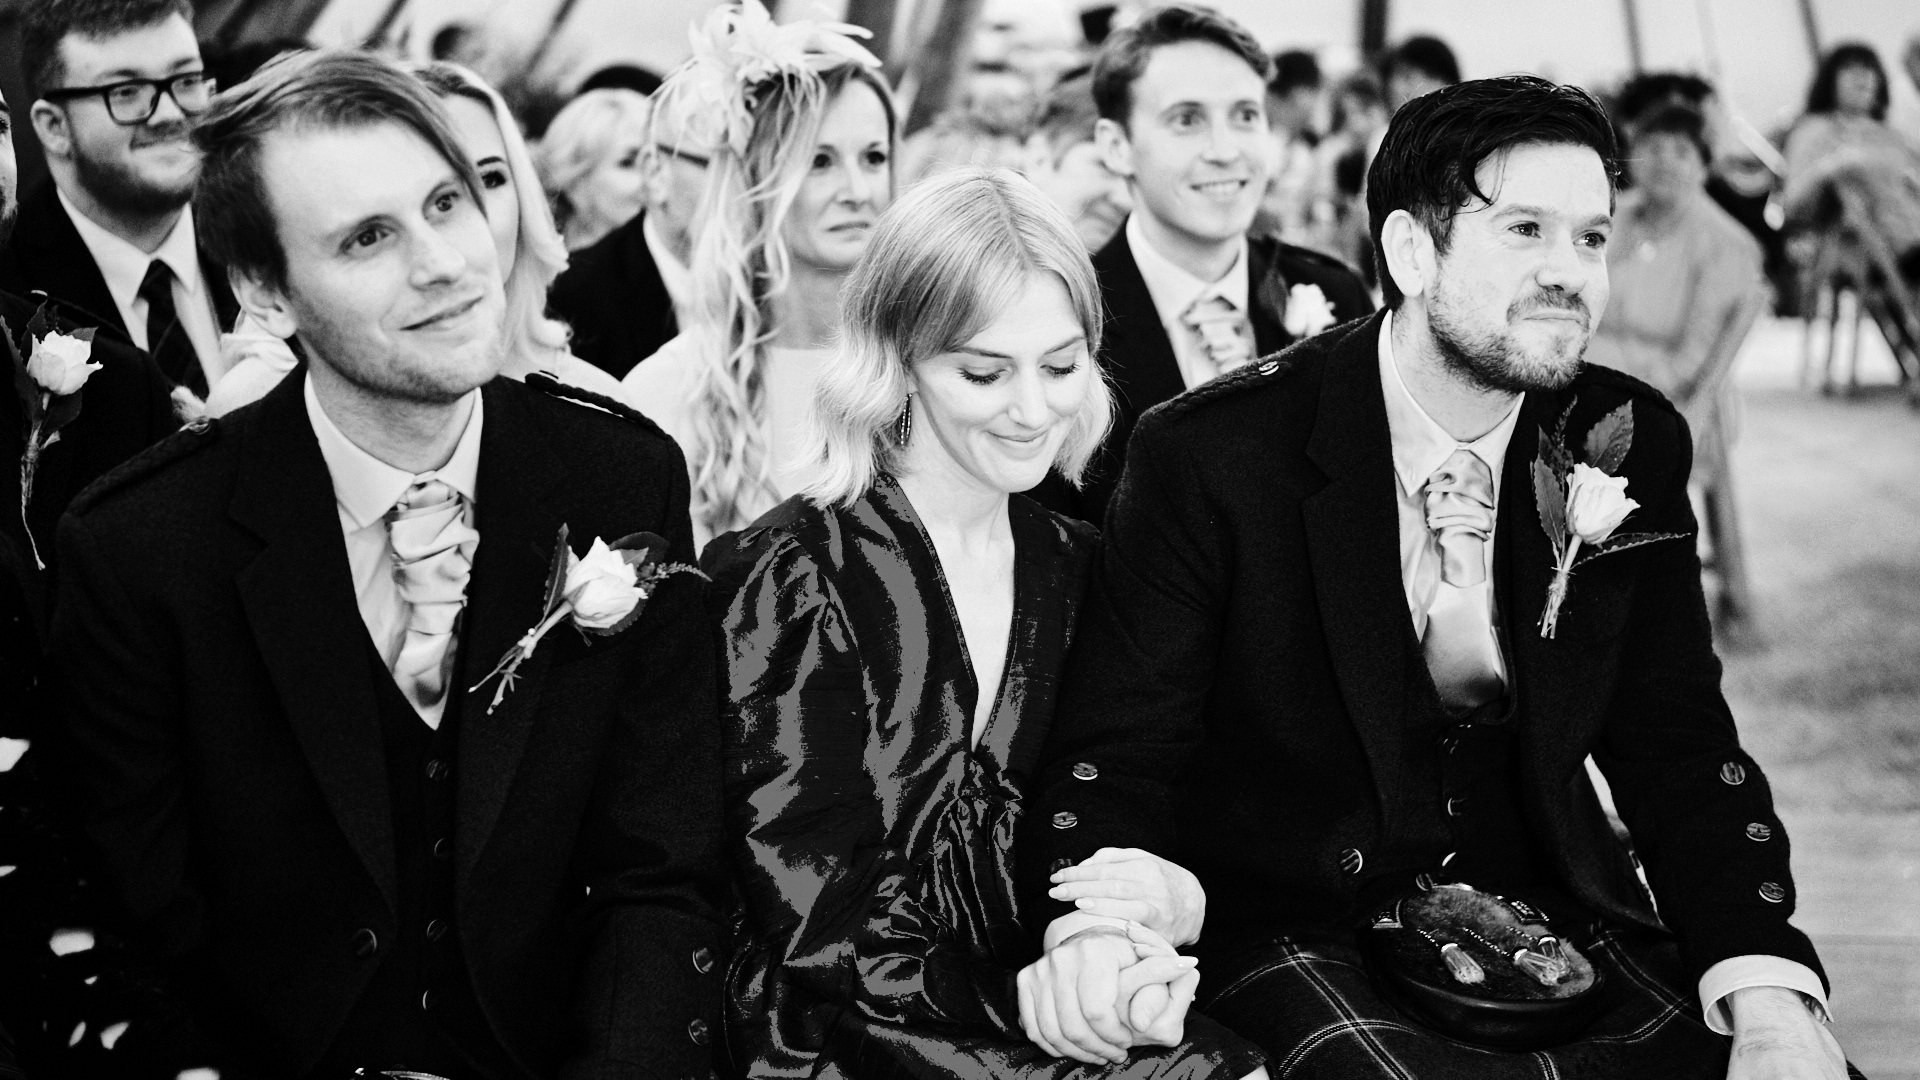 black and white photograph of a wedding guests smiling during a wedding ceremony